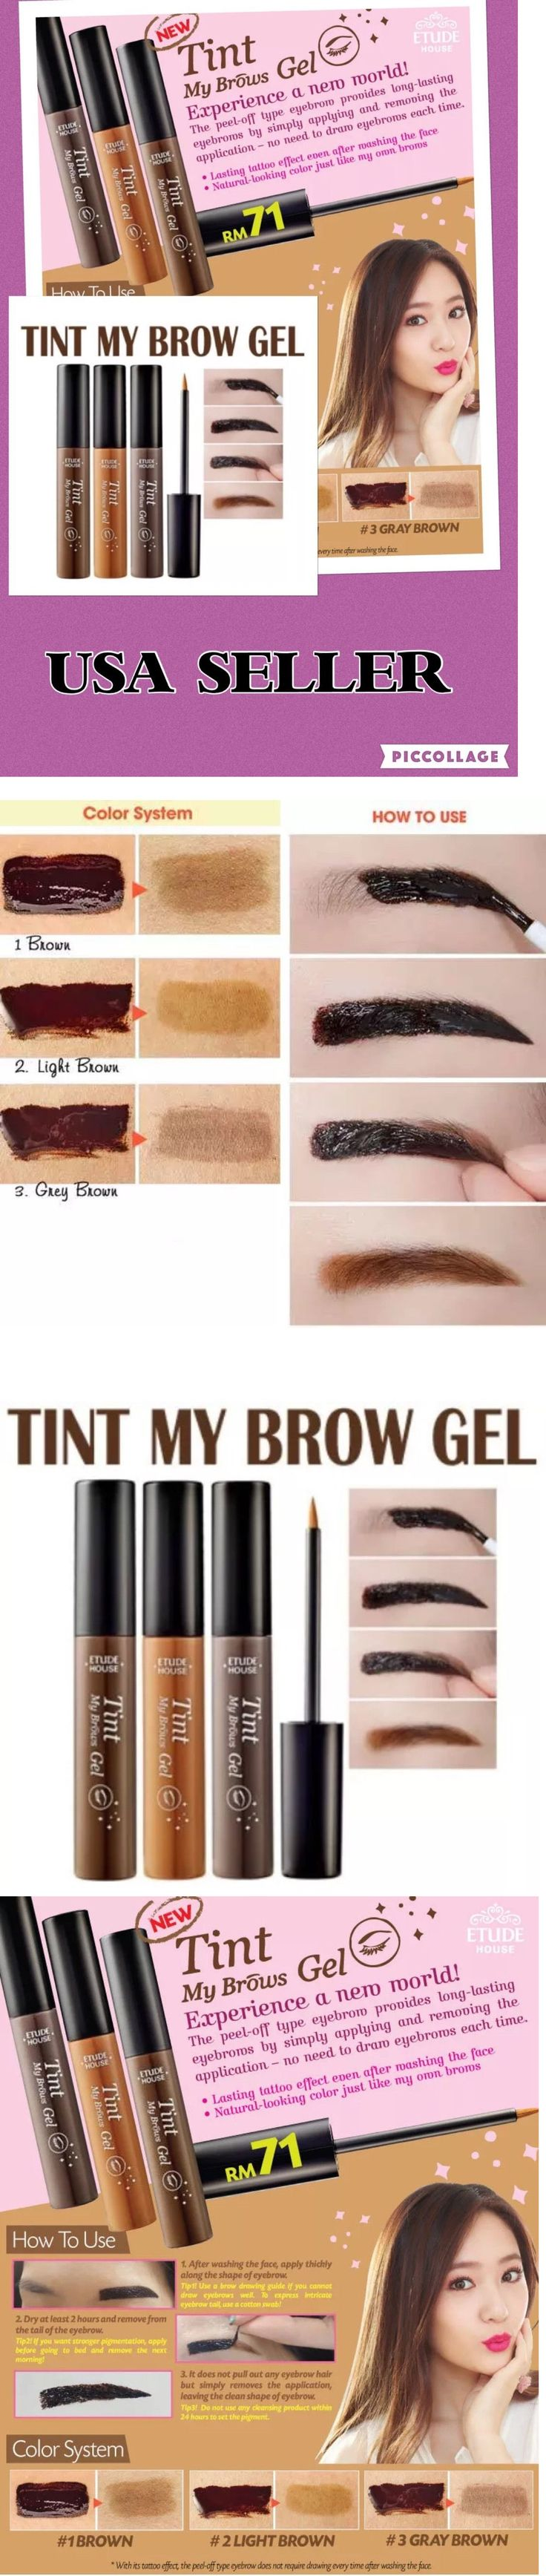 Eyebrow Liner and Definition: Etude House Tint My Brows Gel Peel Off Korea Cosmetics Usa Seller Wholesale -> BUY IT NOW ONLY: $62 on eBay!